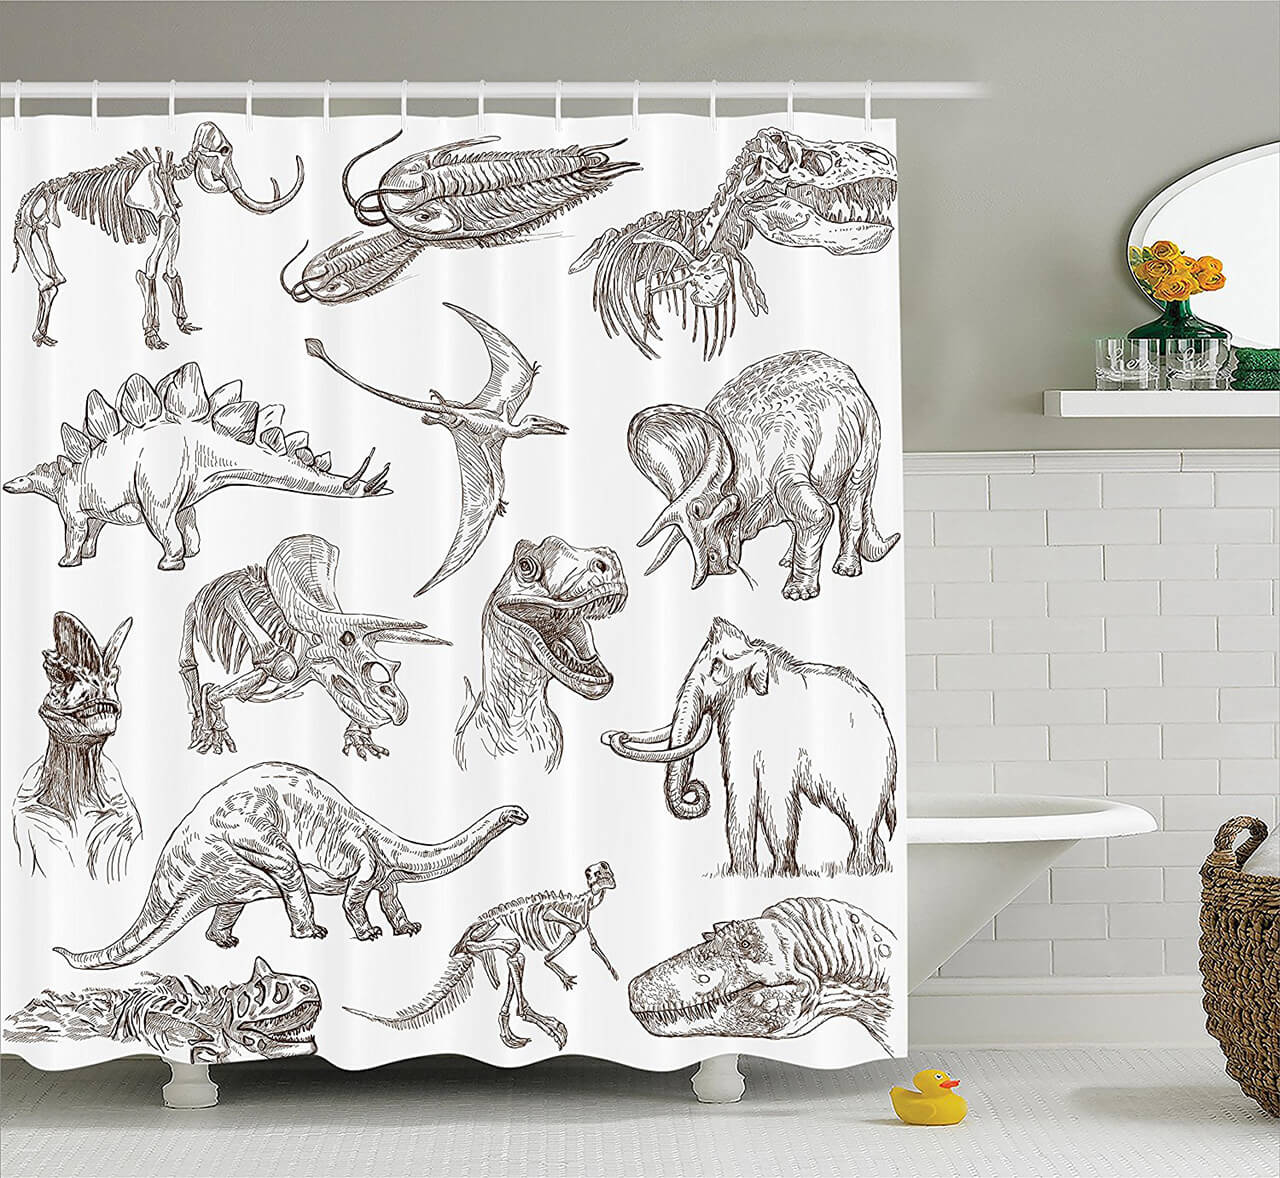 Dinosaur Sketch Curtain